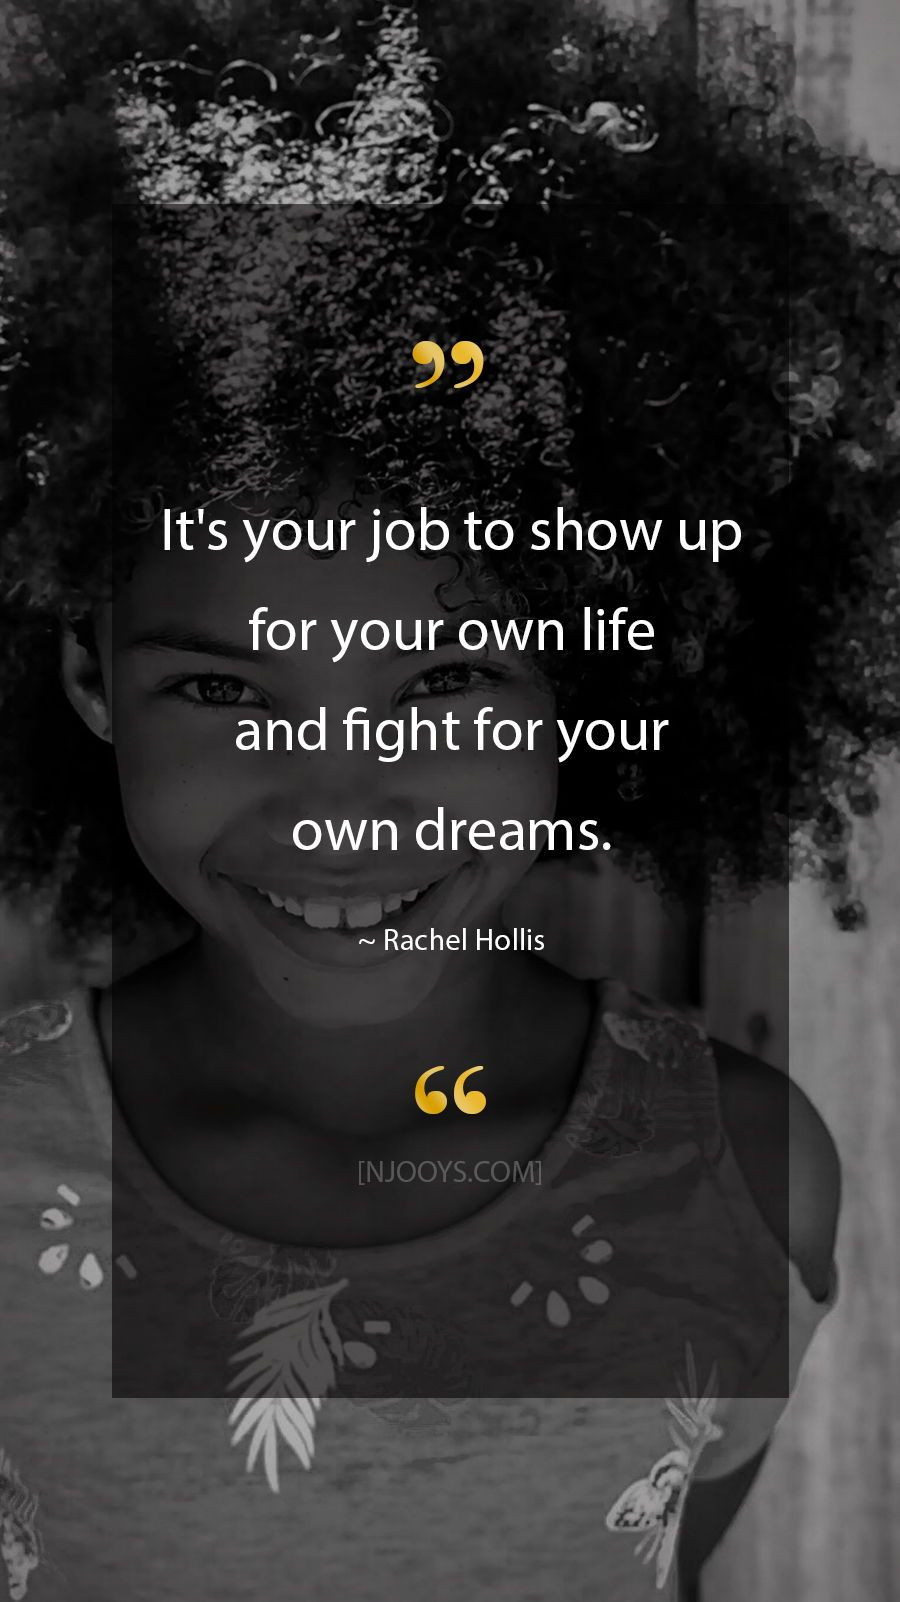 Hollis Quotes. It's your job to show up for your own life